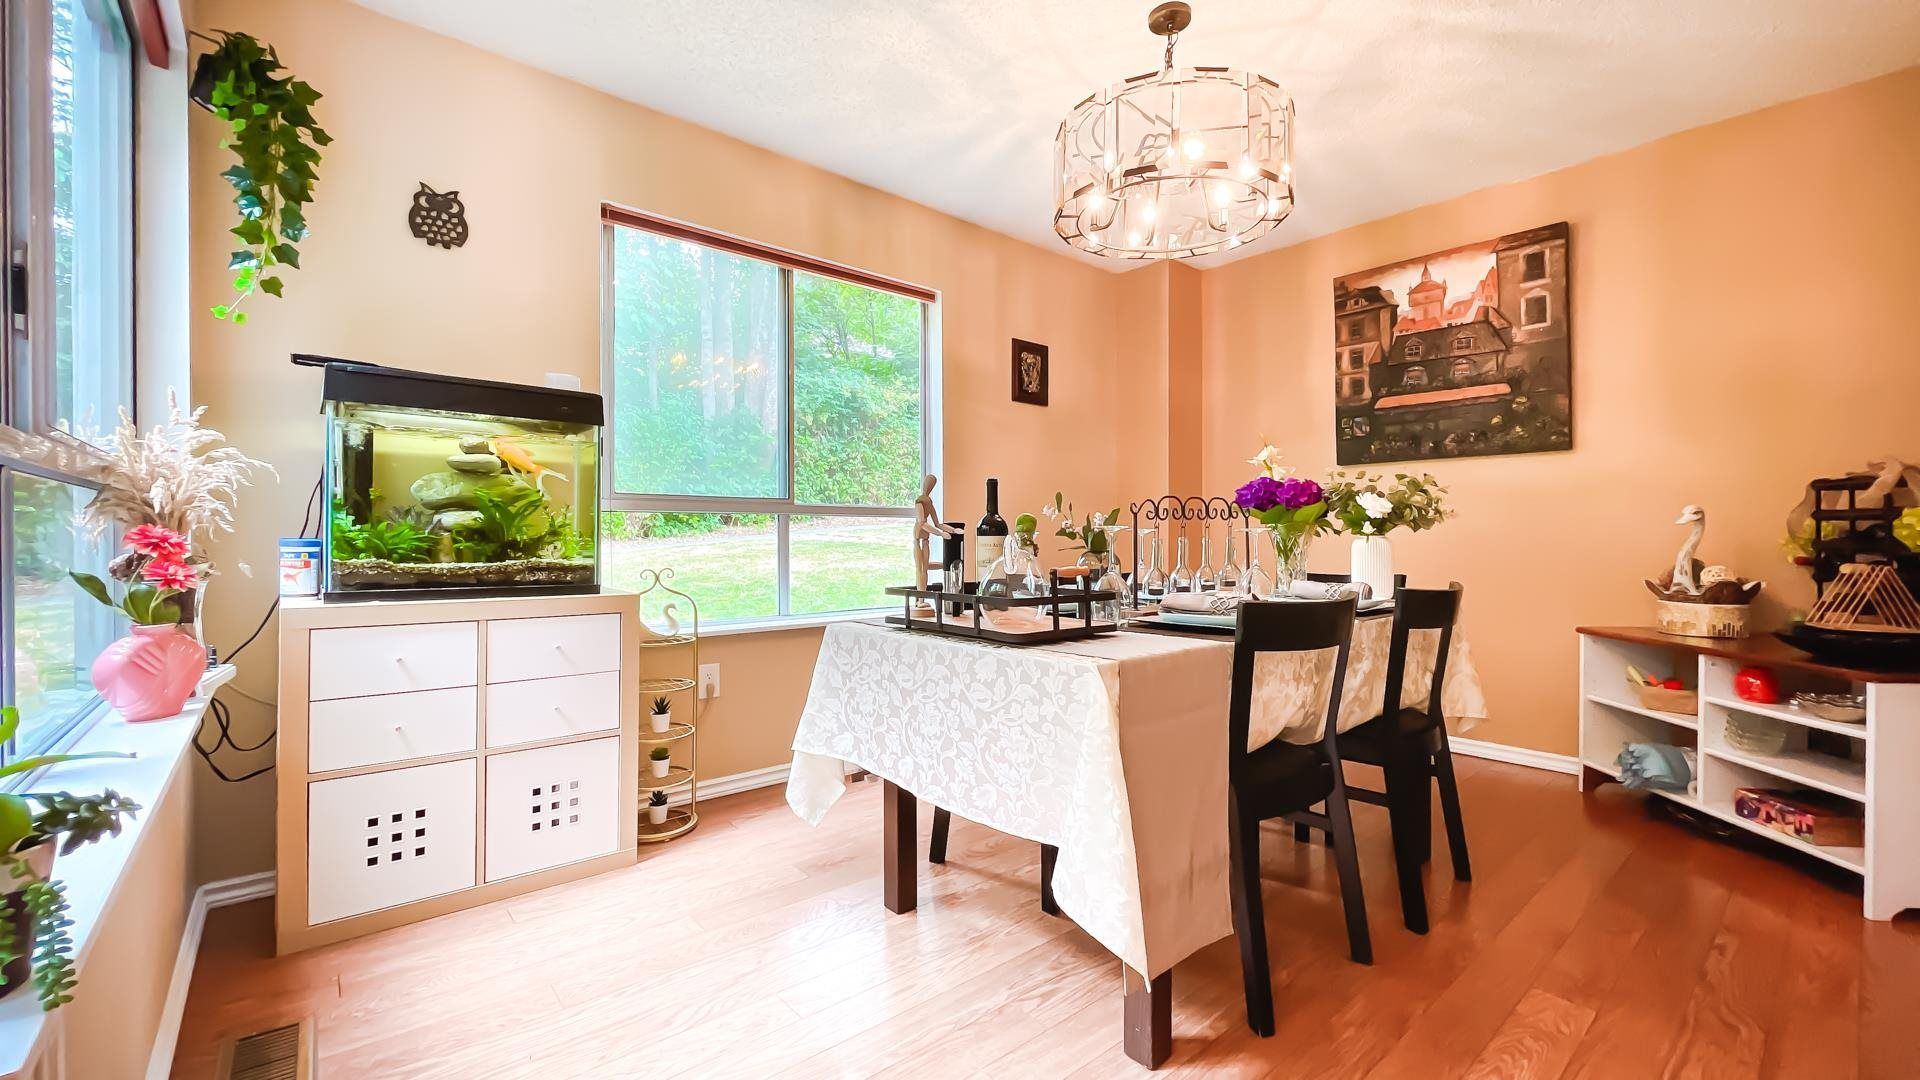 Photo 8: Photos: 66 9000 ASH GROVE CRESCENT in Burnaby: Forest Hills BN Townhouse for sale (Burnaby North)  : MLS®# R2603744